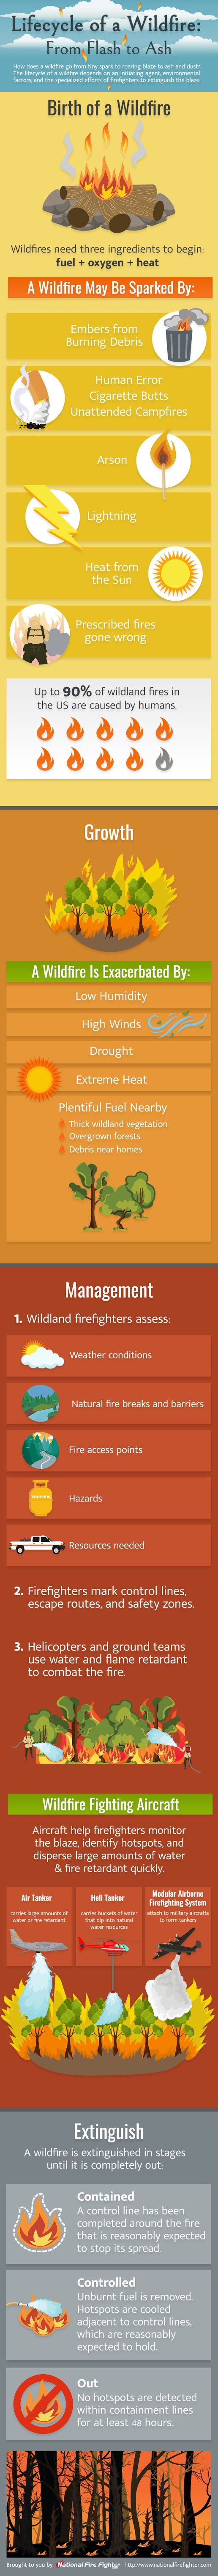 Lifecycle of a Wildfire: From Flash to Ash #infographic #Wildfire #Fire #Lifecycle #Flash to Ash